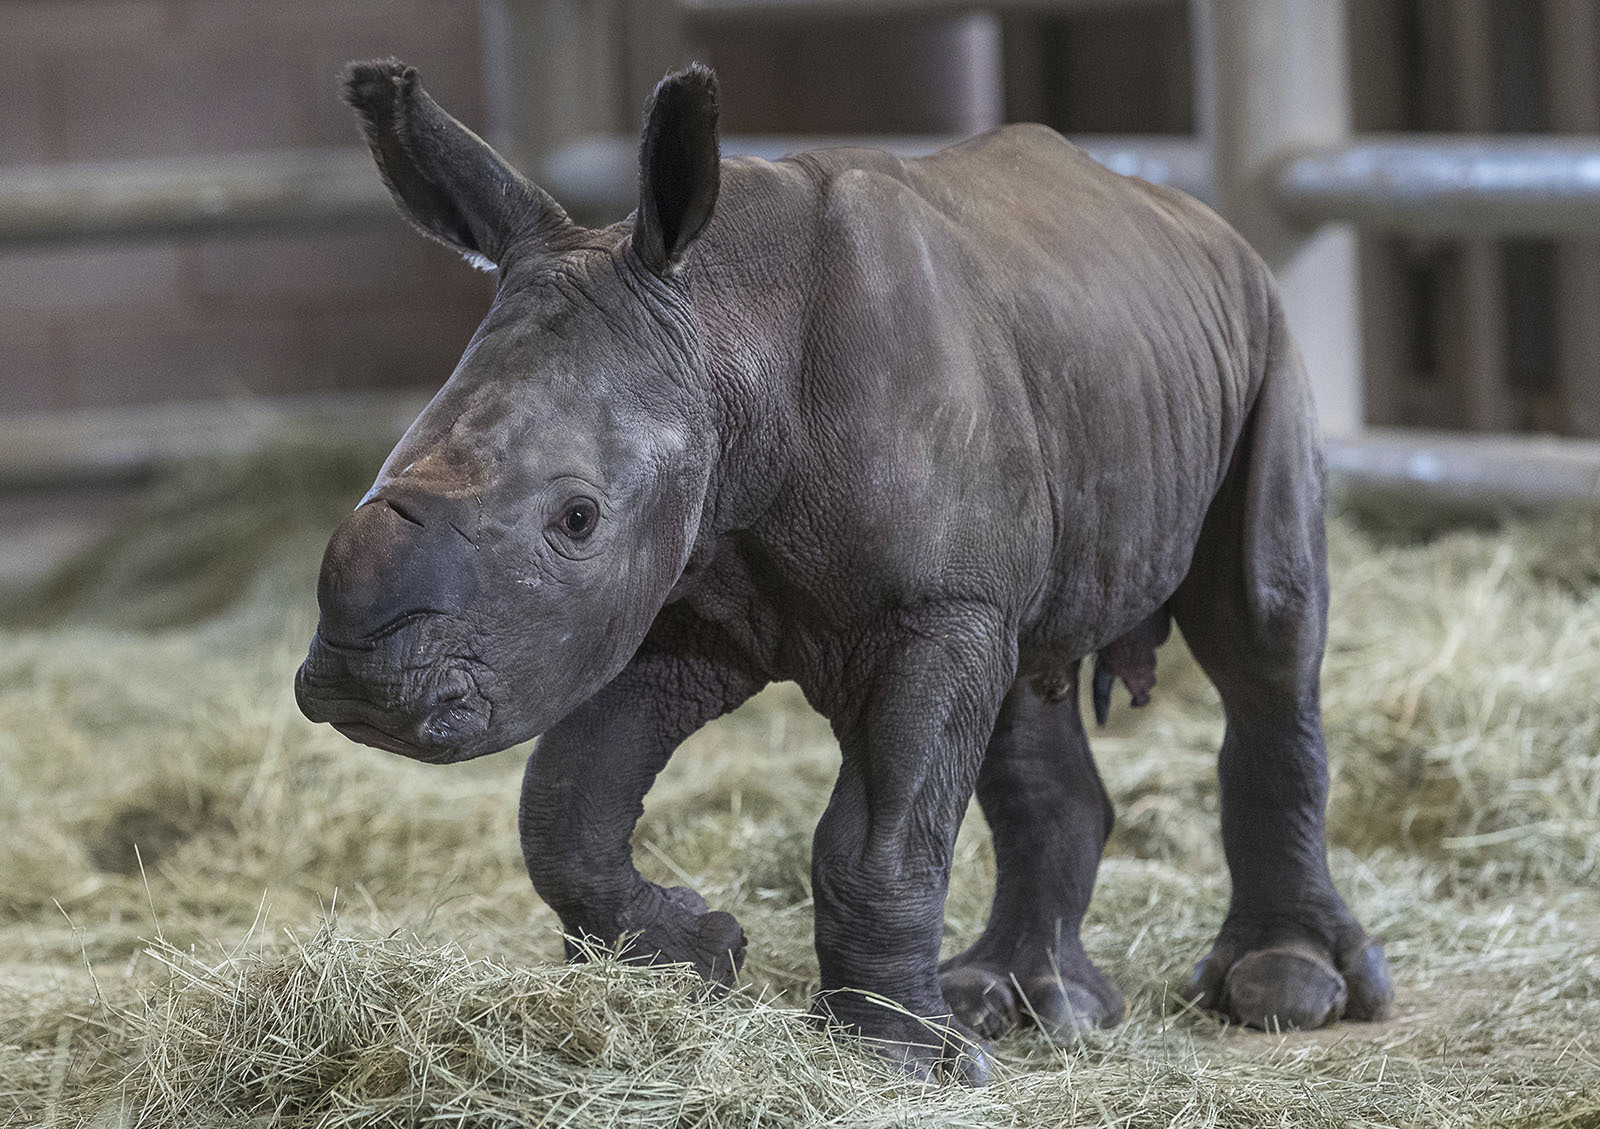 San Diego Zoo Global Announces Historic Birth of Southern